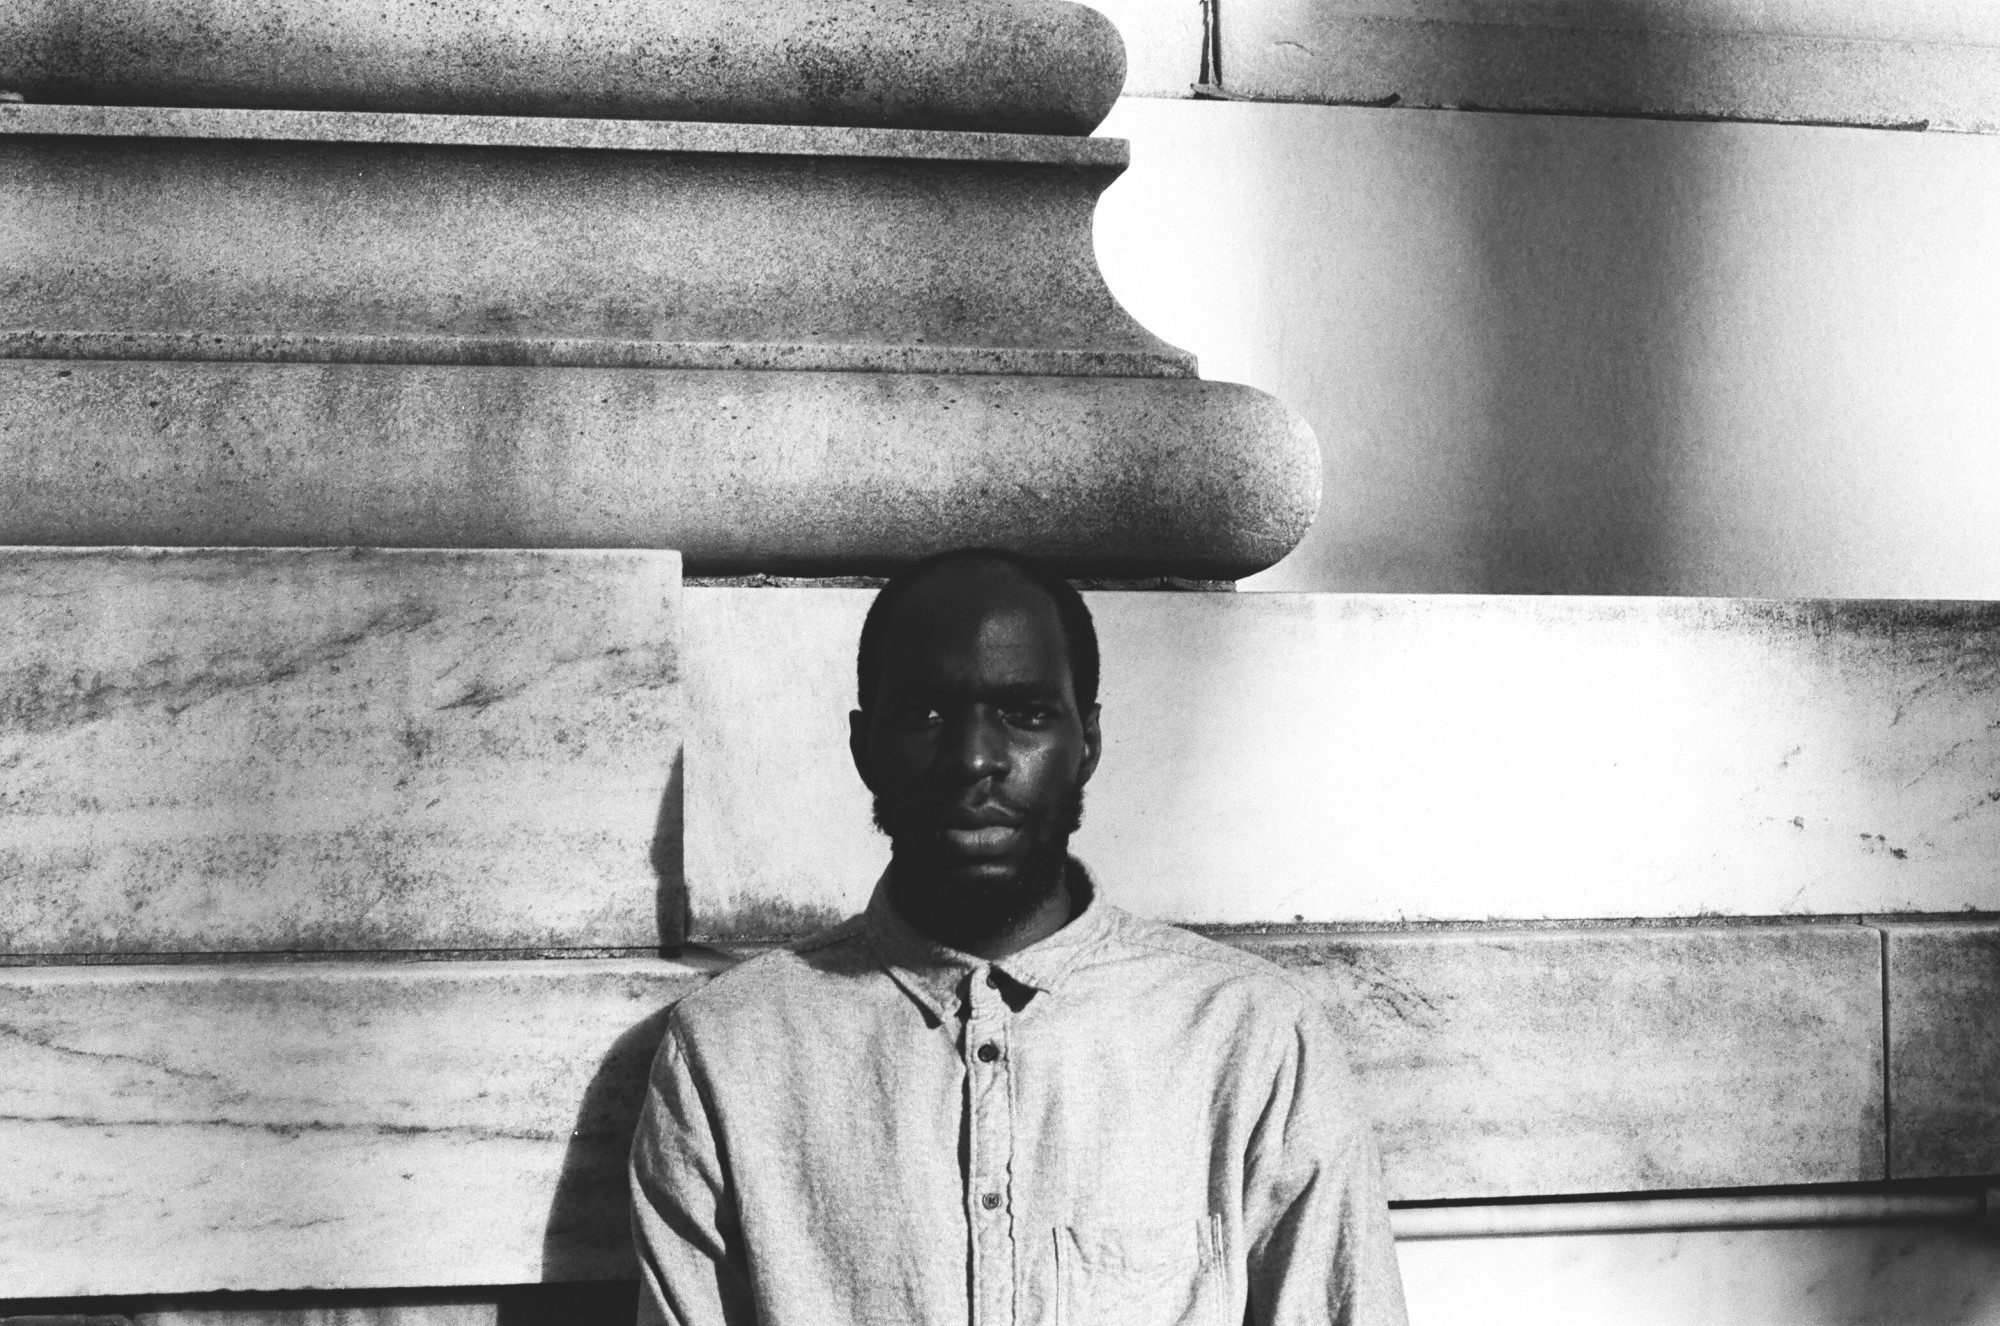 Tobi Kassim is standing in front of a large column in this black and white portrait.